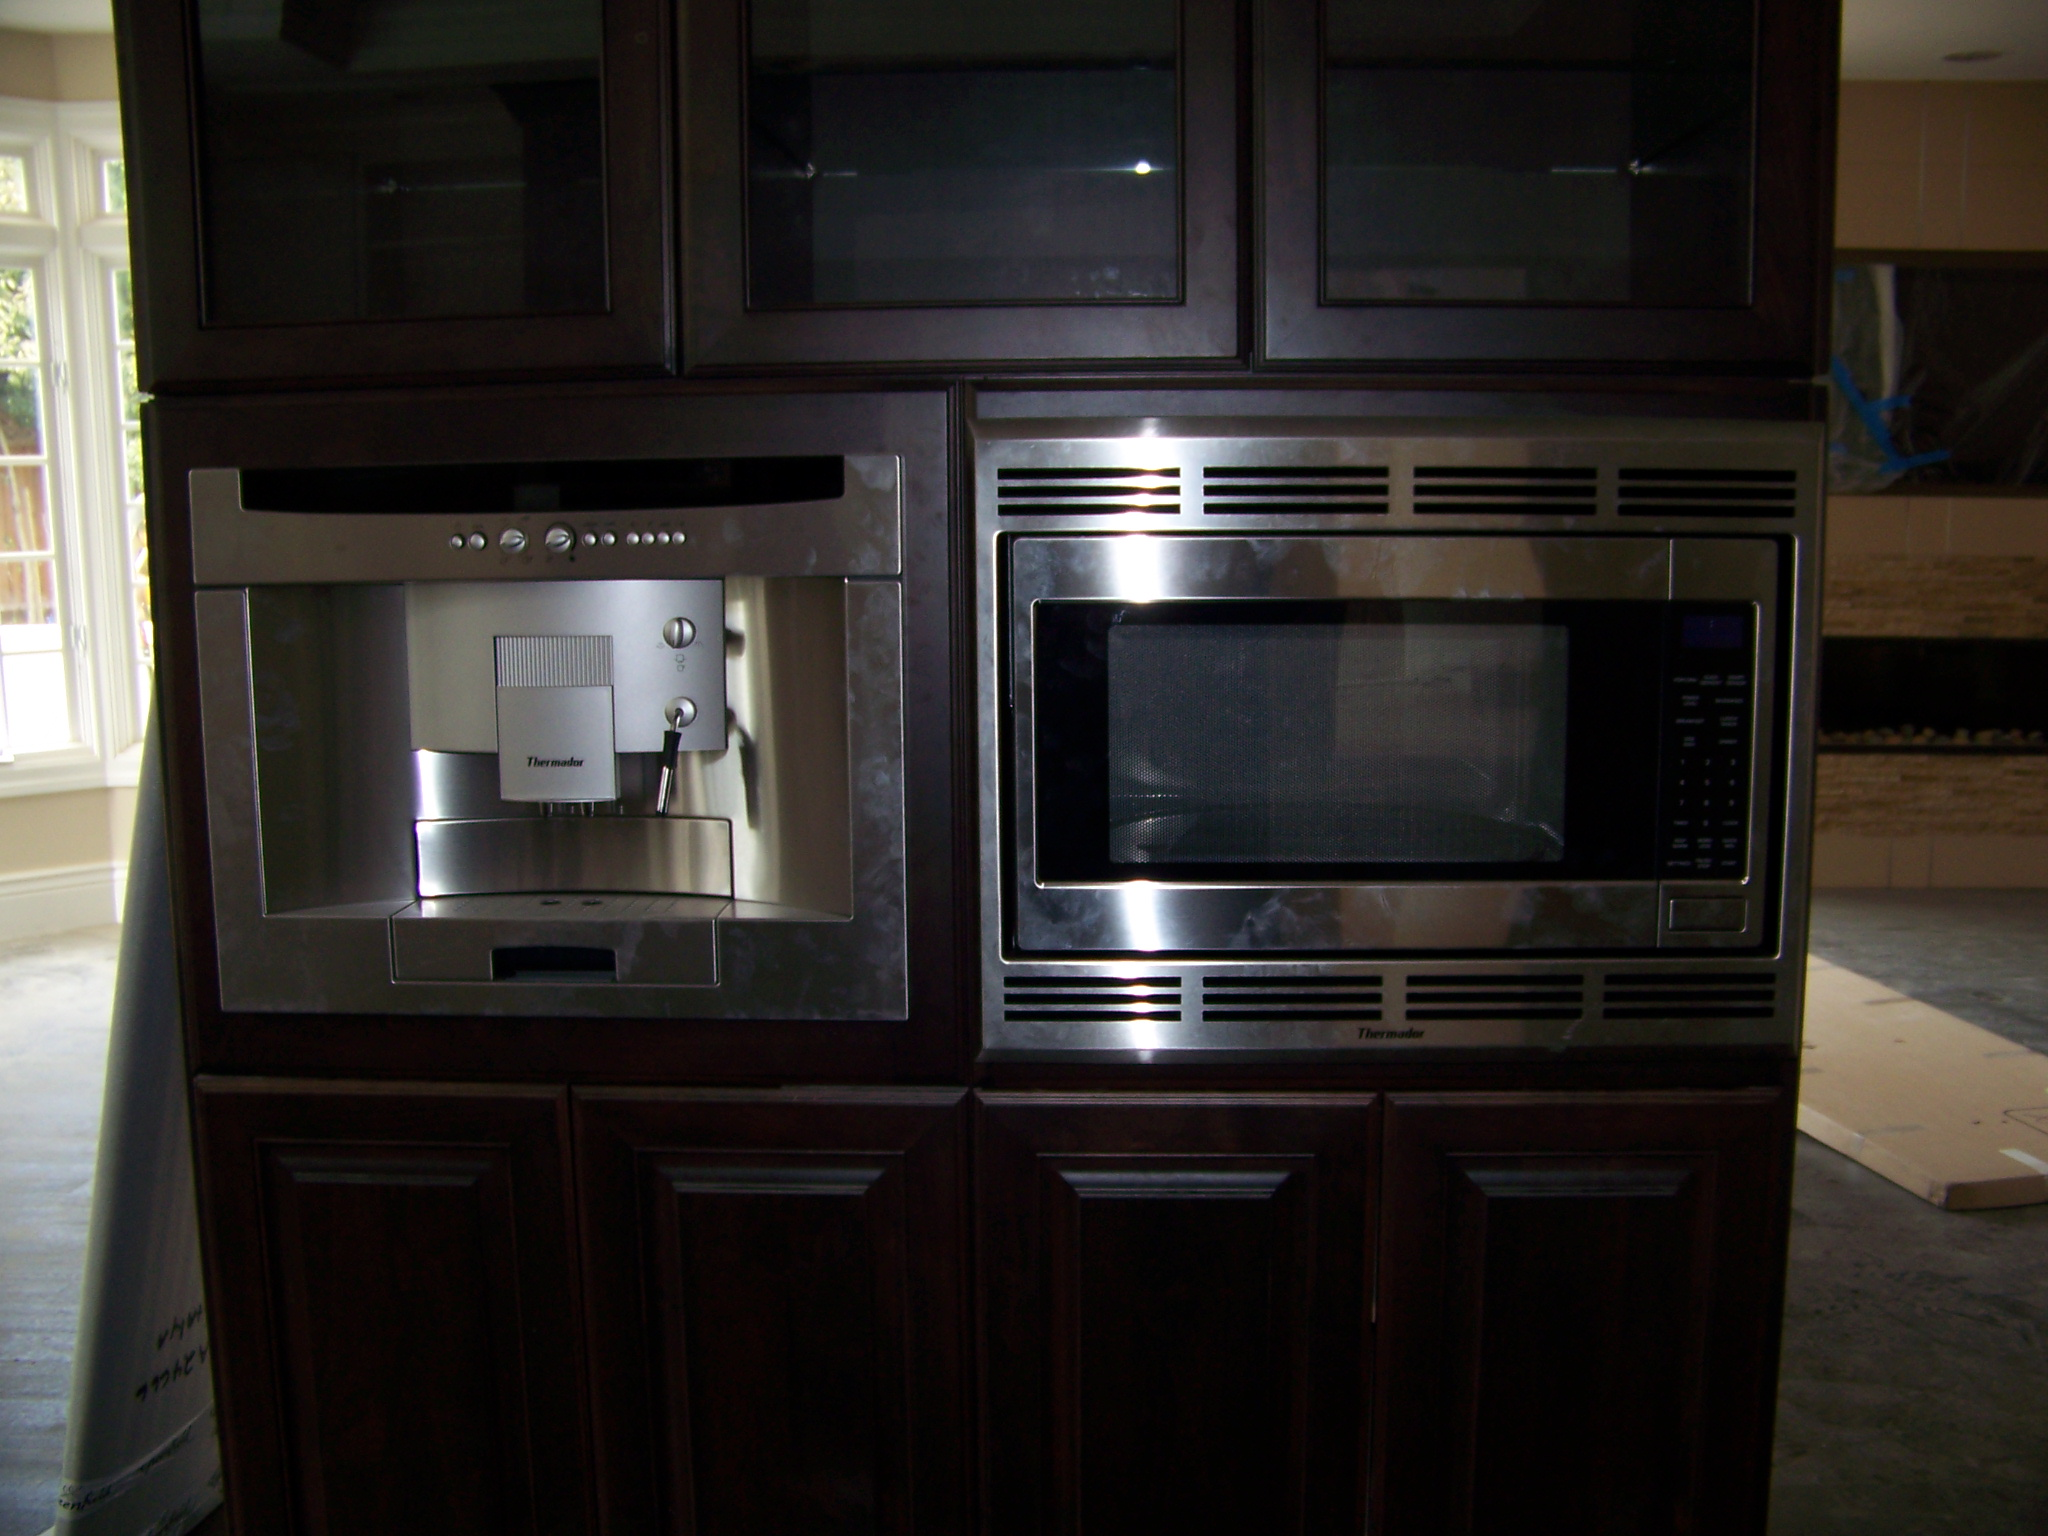 Coffee Maker Microwave Combo : Coffee maker /microwave combination have to find right size appliances ninasobinina